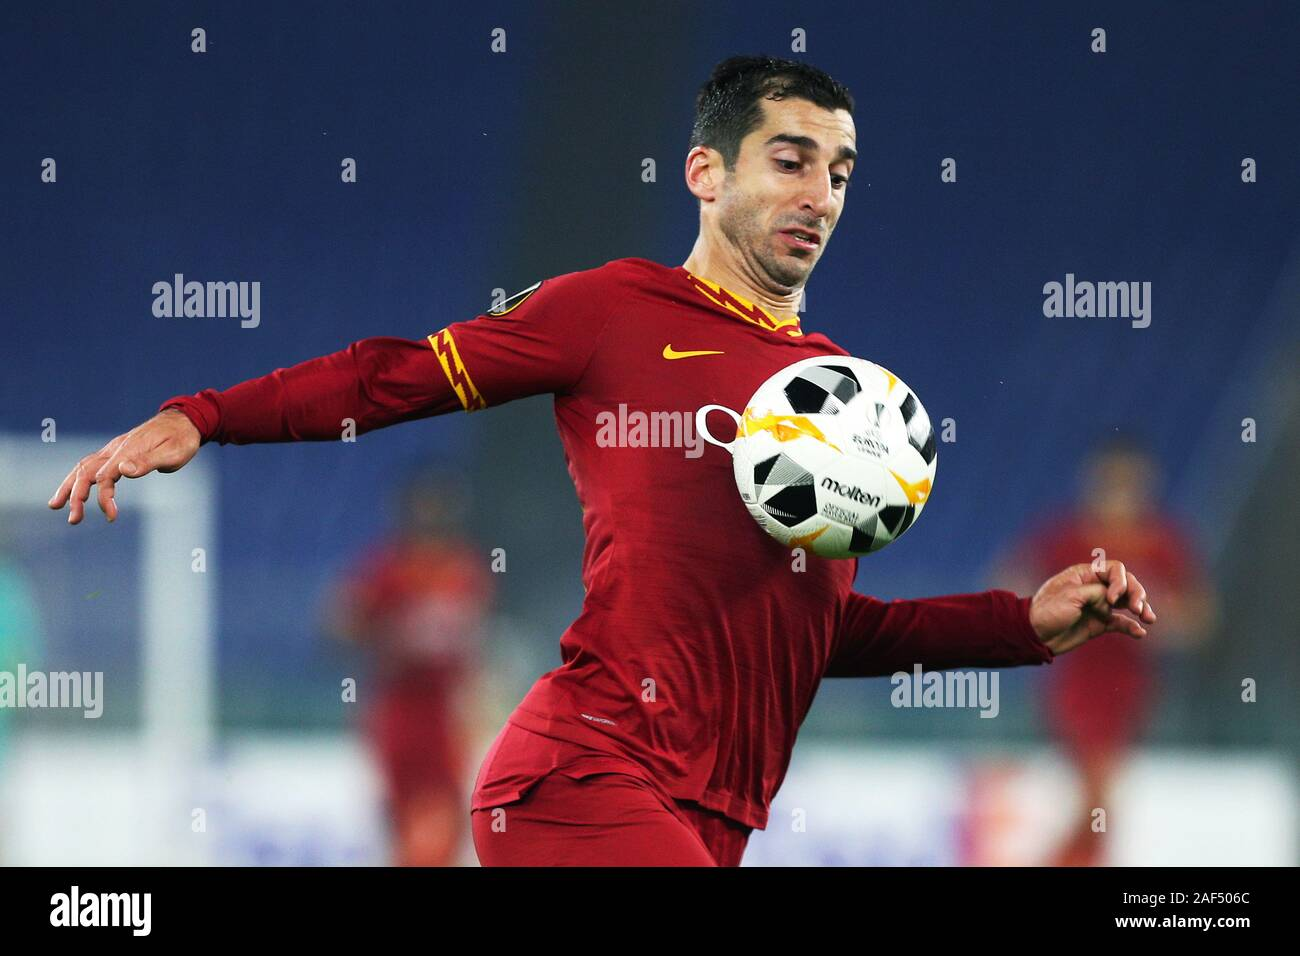 Henrik Mkhitaryan of Roma in action during the UEFA Europa League, Group J football match between AS Roma and Wolfsberg AC on December 12, 2019 at Stadio Olimpico in Rome, Italy - Photo Federico Proietti/ESPA-Images Stock Photo